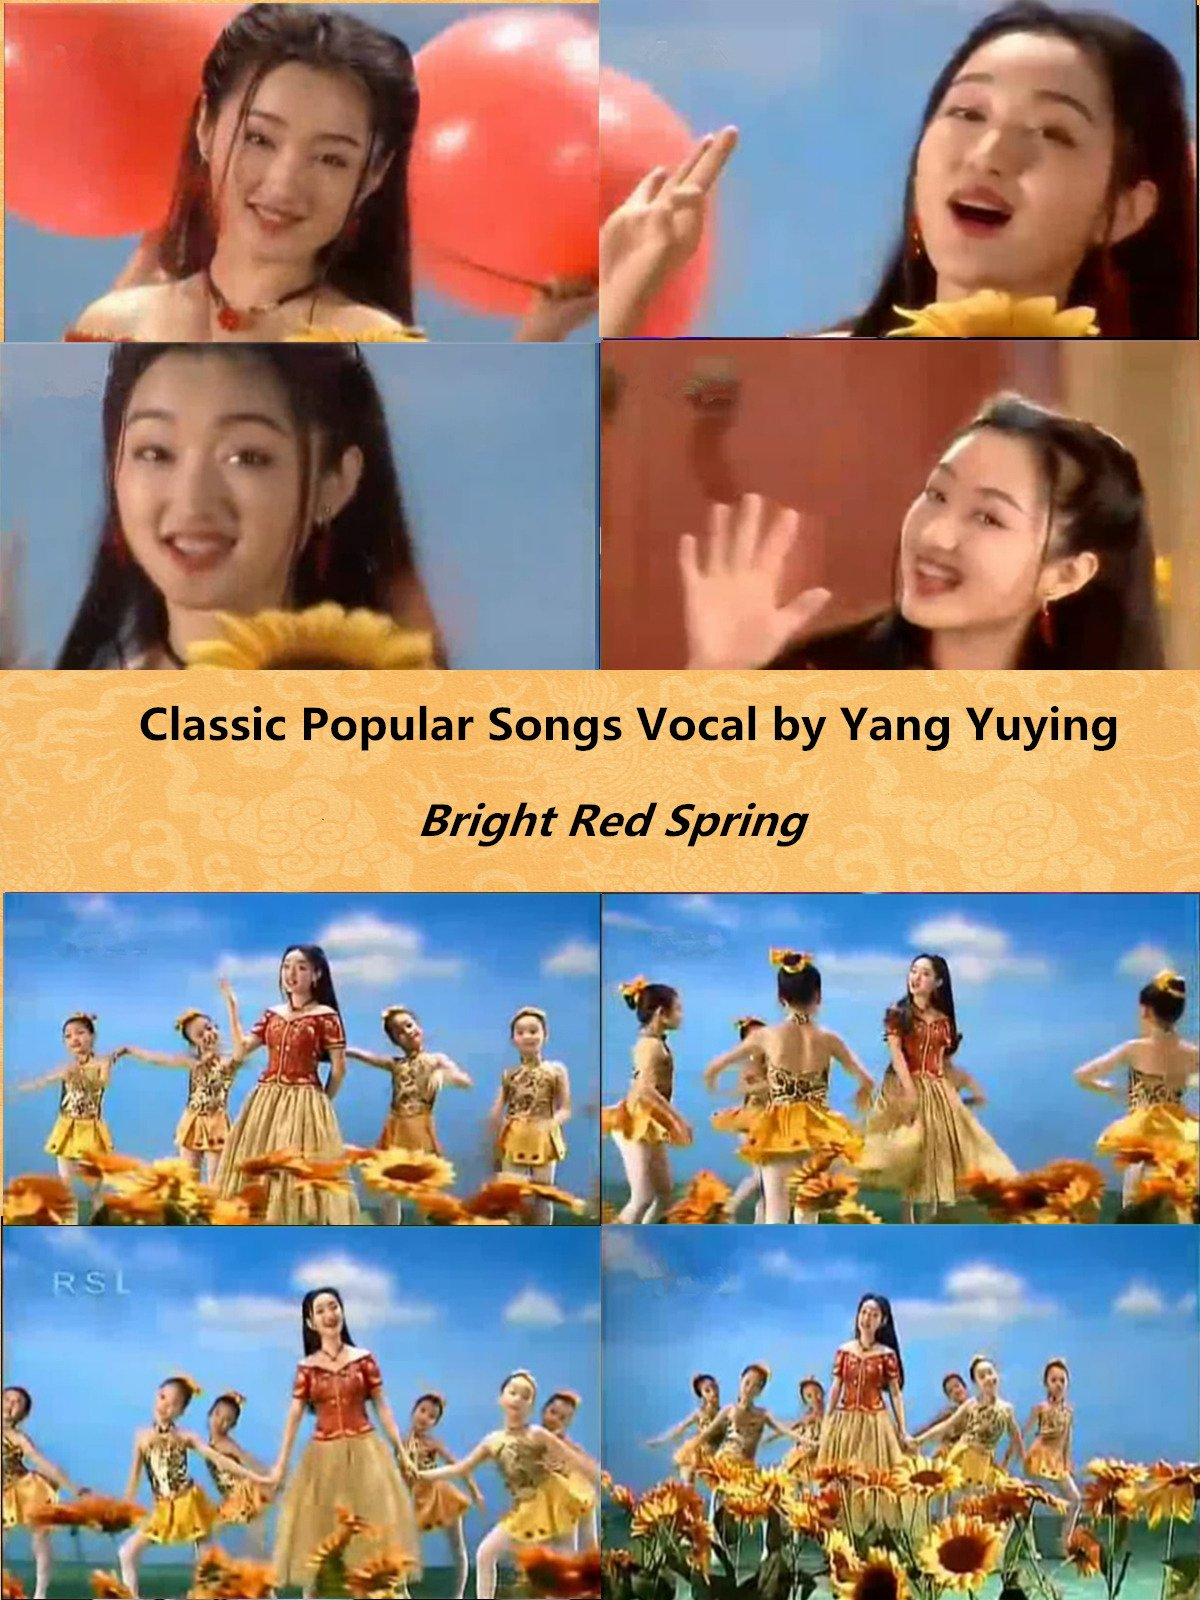 Clip: Bright Red Spring